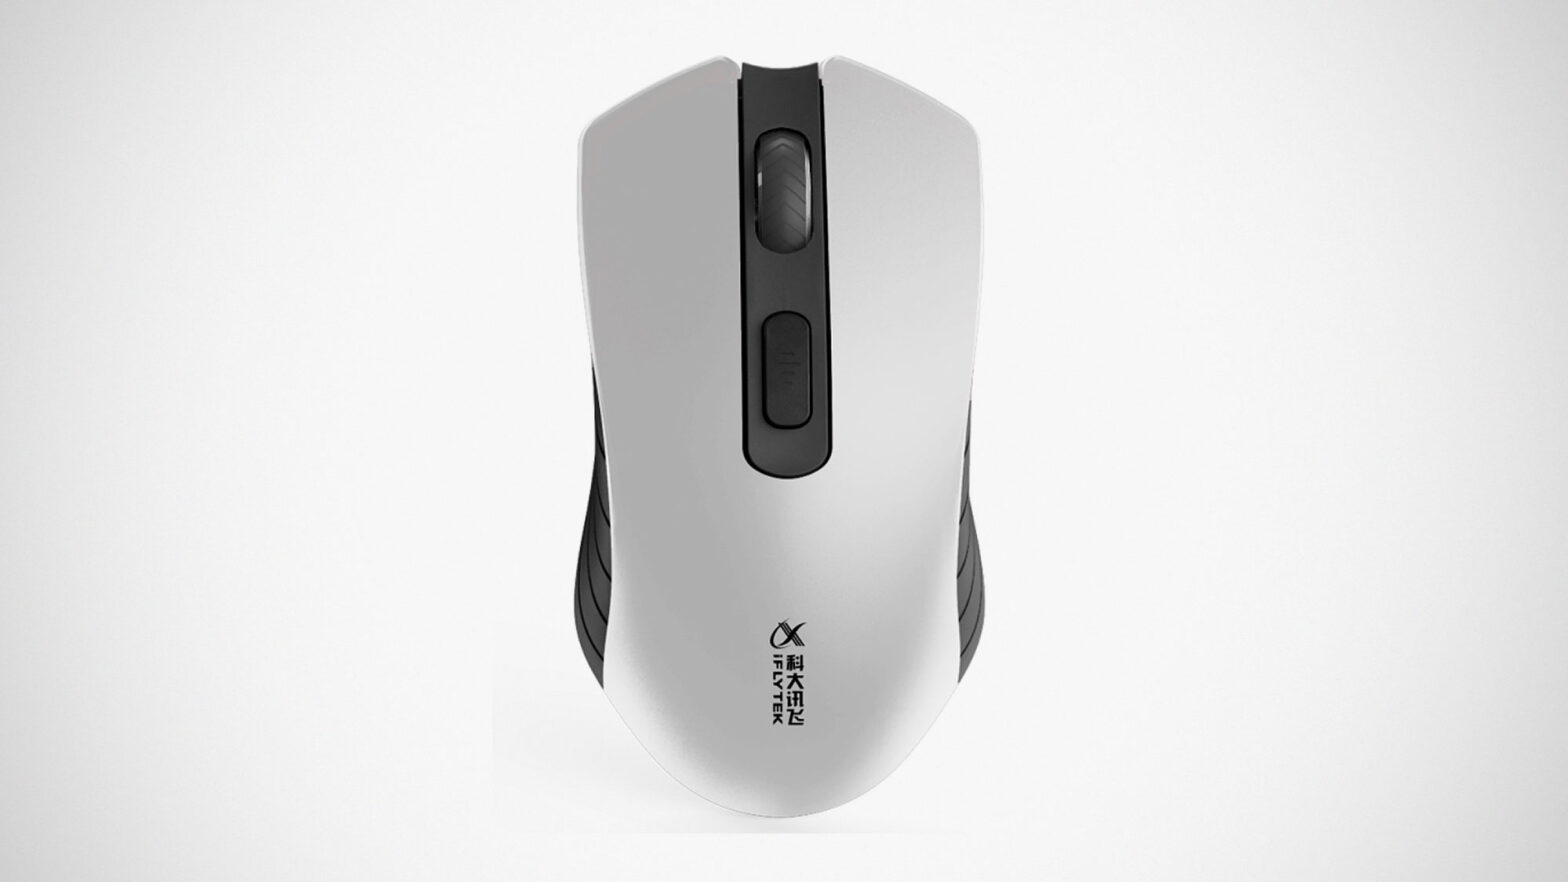 iFLYTEK M210 Smart Voice Input Mouse